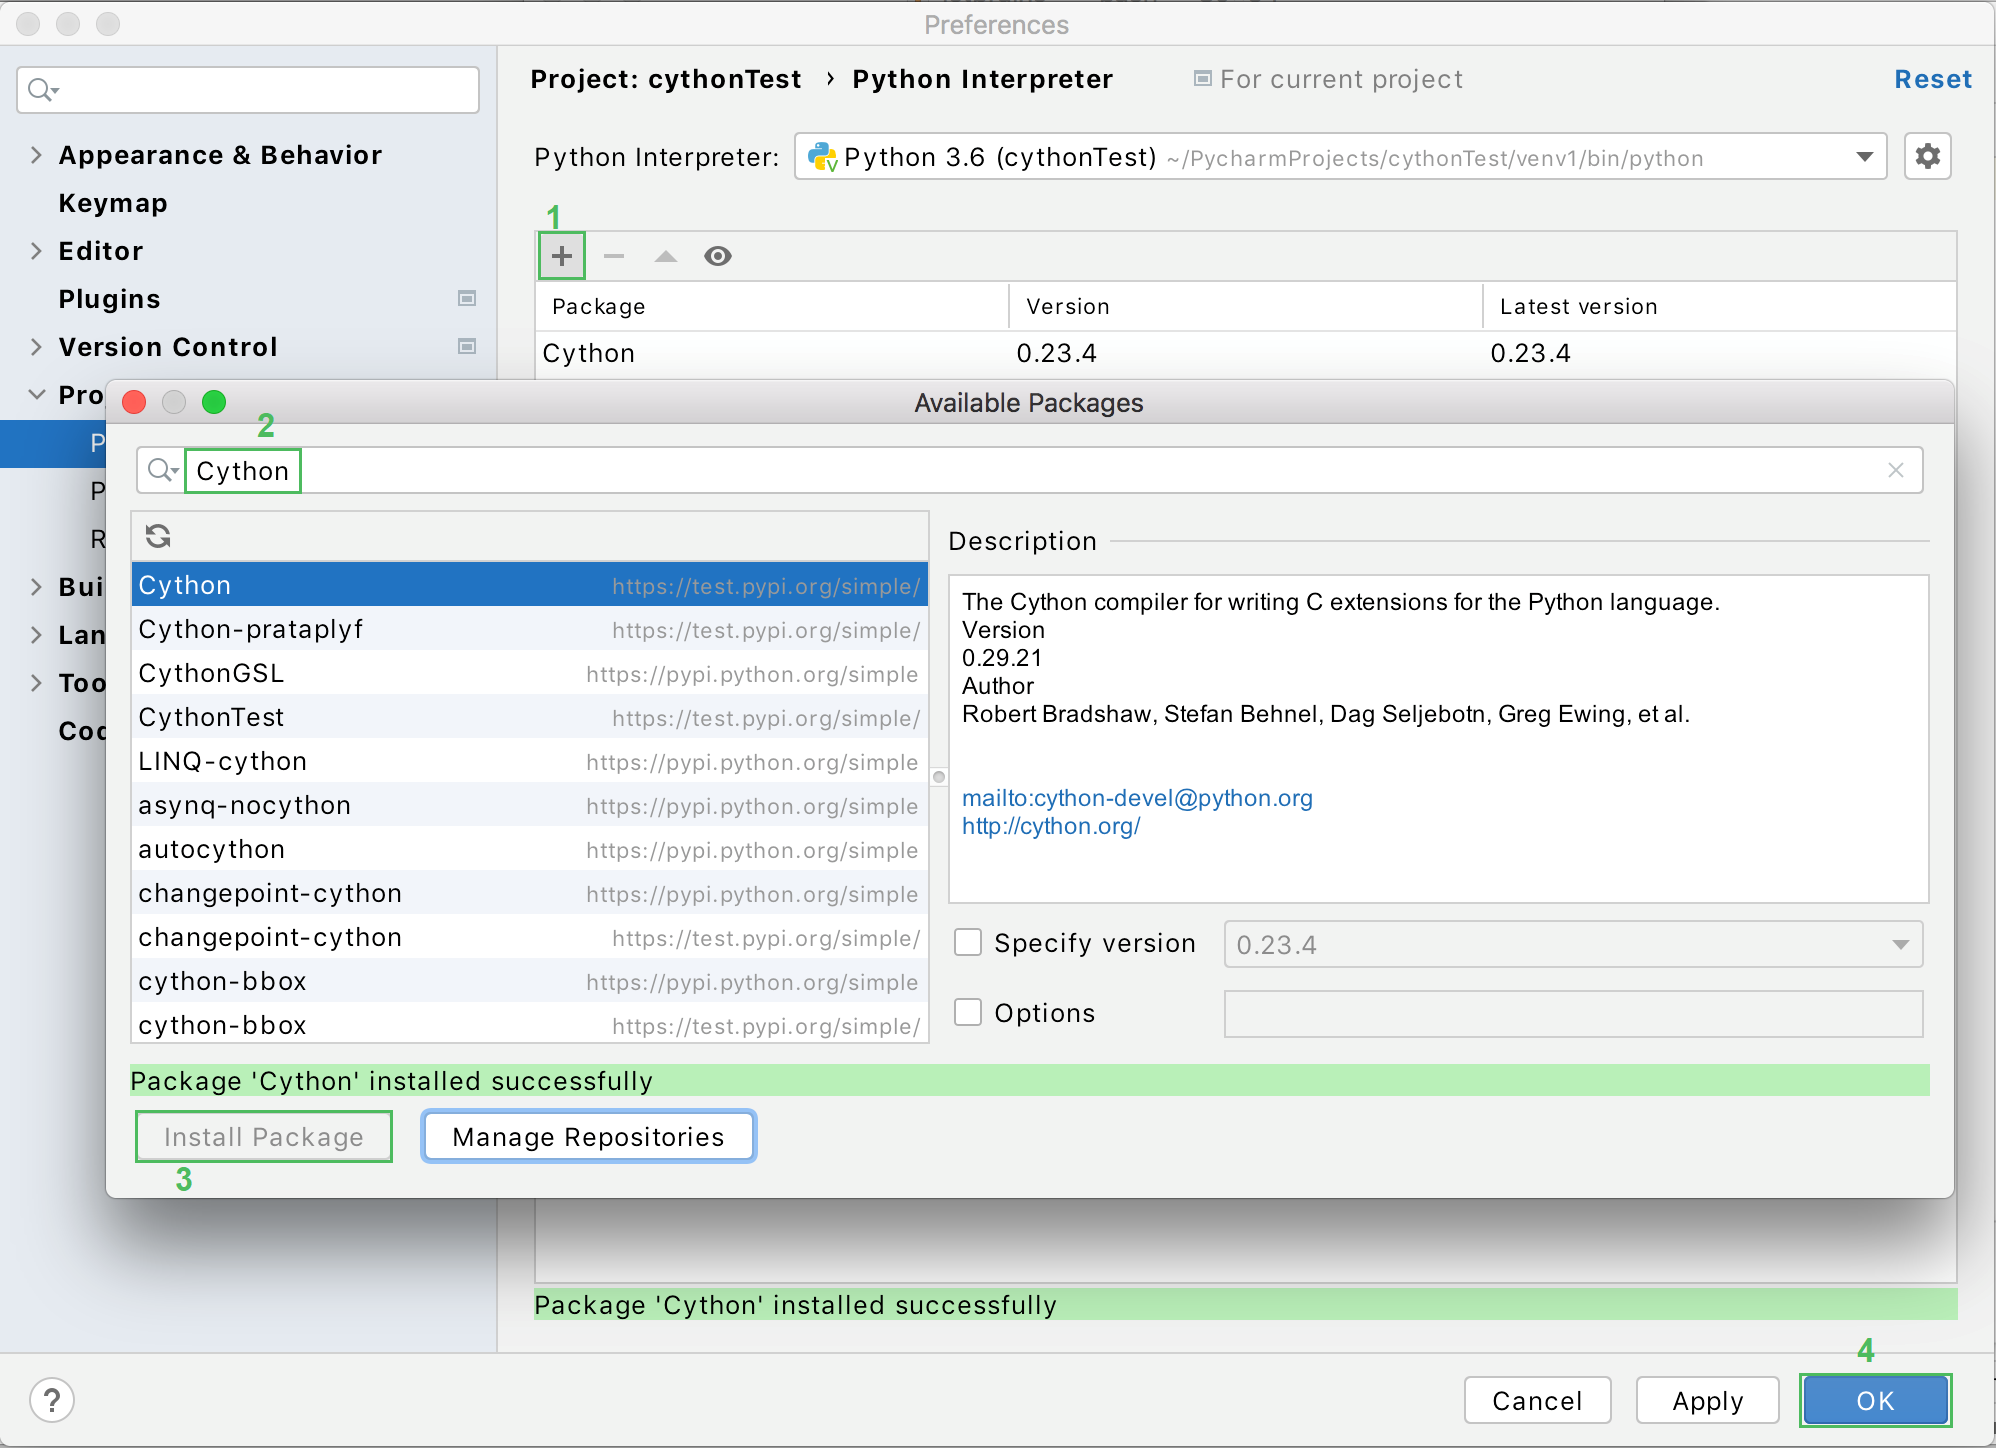 Installing the Cython package